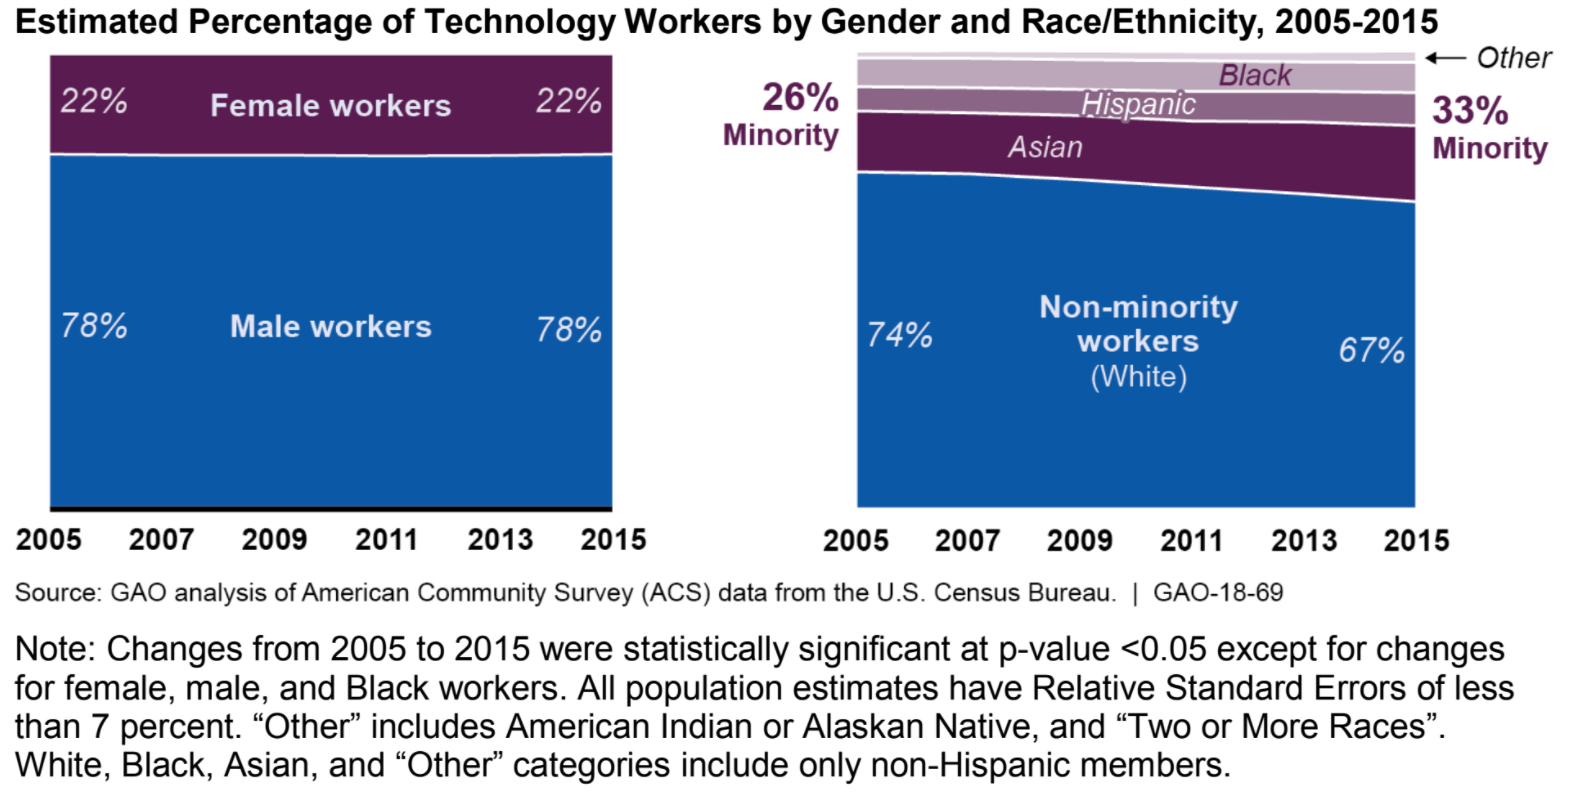 Federal agencies need to improve how they collect tech diversity data, report says